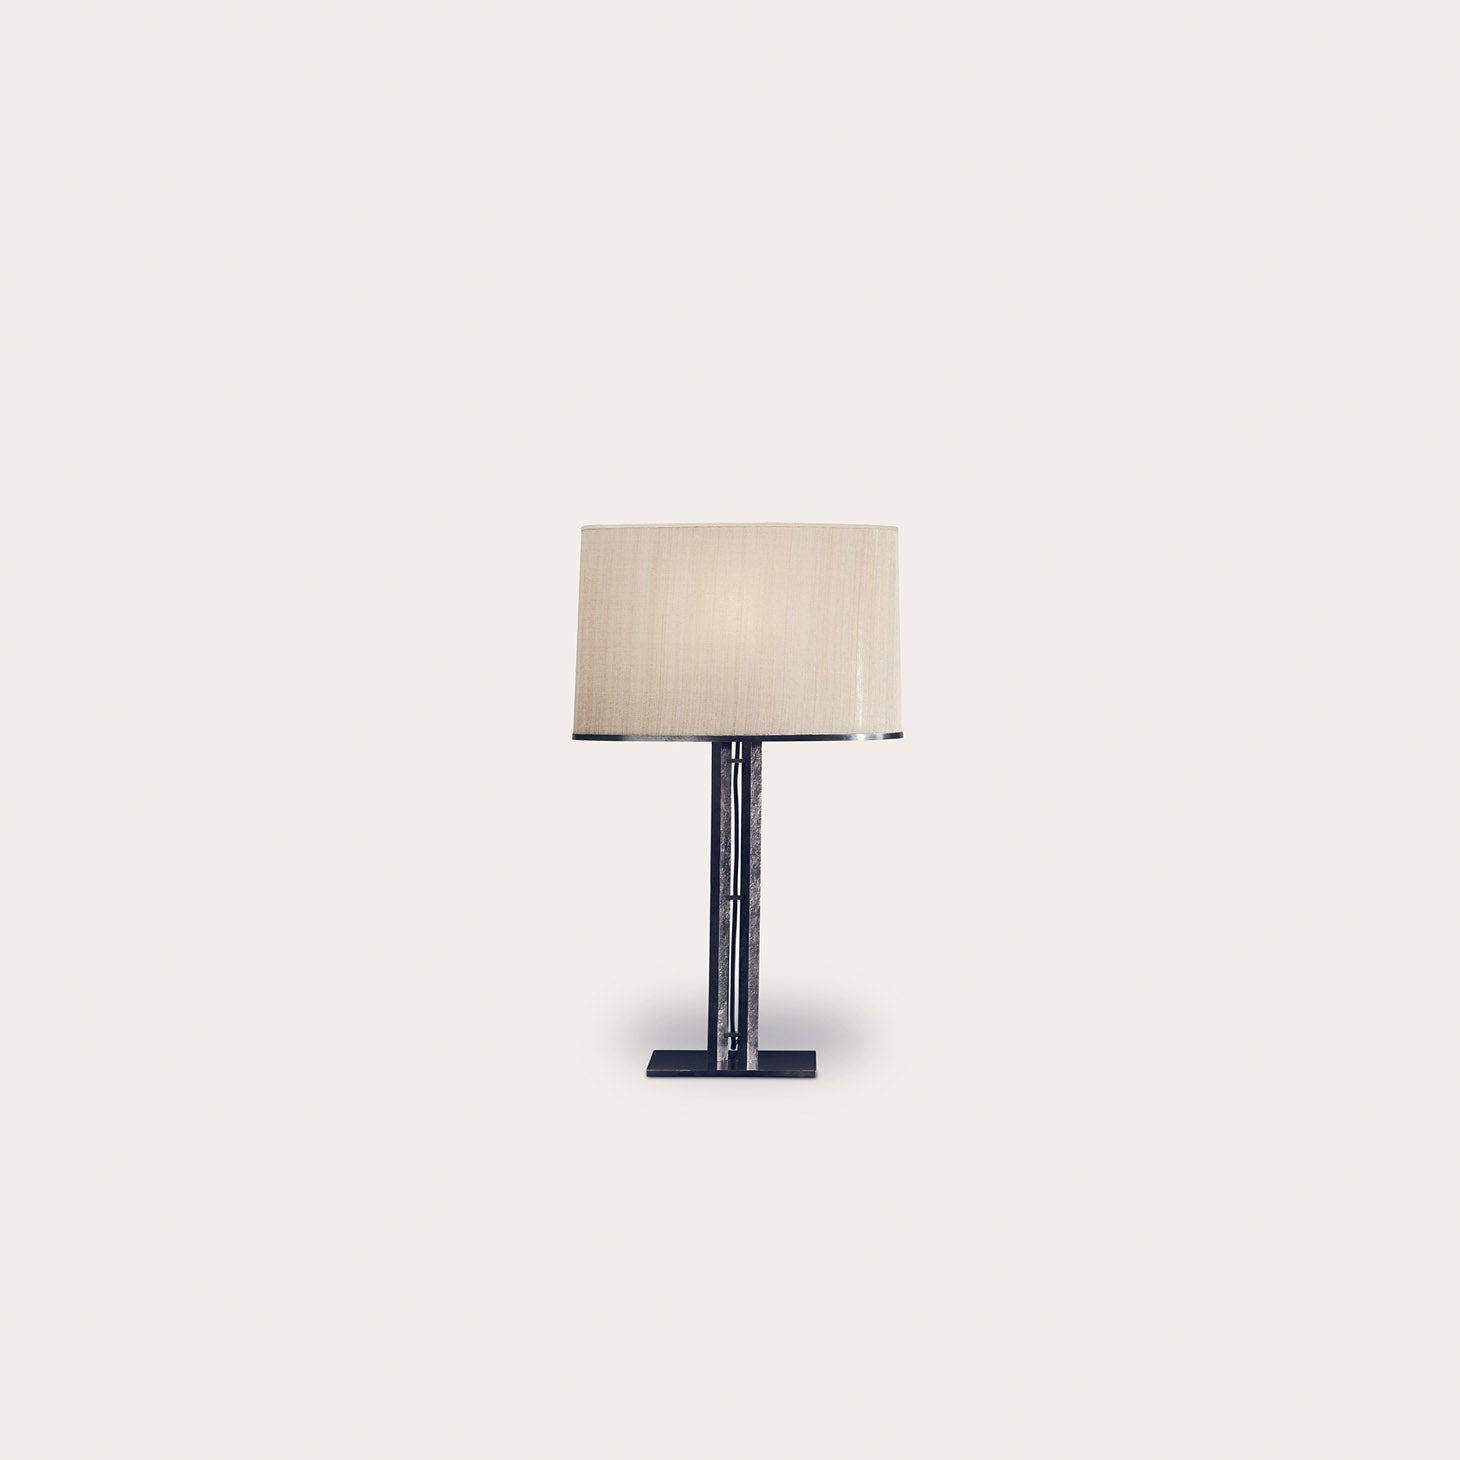 Bakar Lighting Bruno Moinard Designer Furniture Sku: 773-160-10001